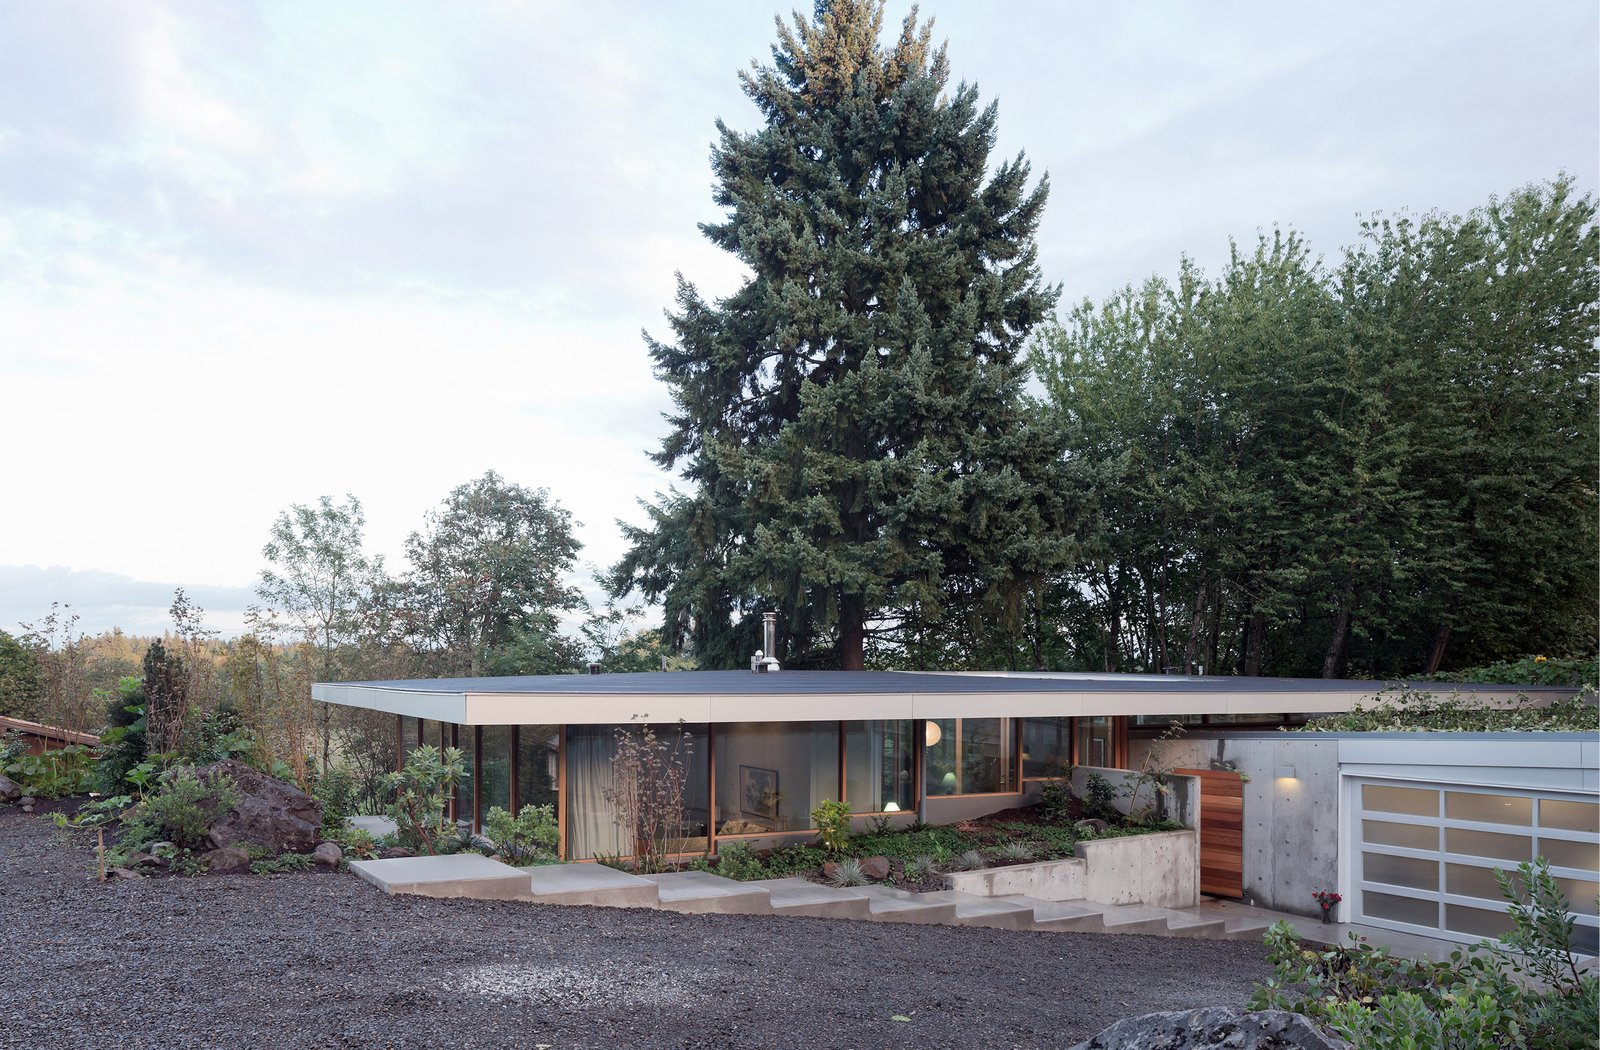 """In response to the demand to live harmoniously with nature and community, the Courtyard House is conceived as a canopy structure: a single volume framed between a cantilevered concrete slab below and a roof """"umbrella"""" above.  The Courtyard House"""